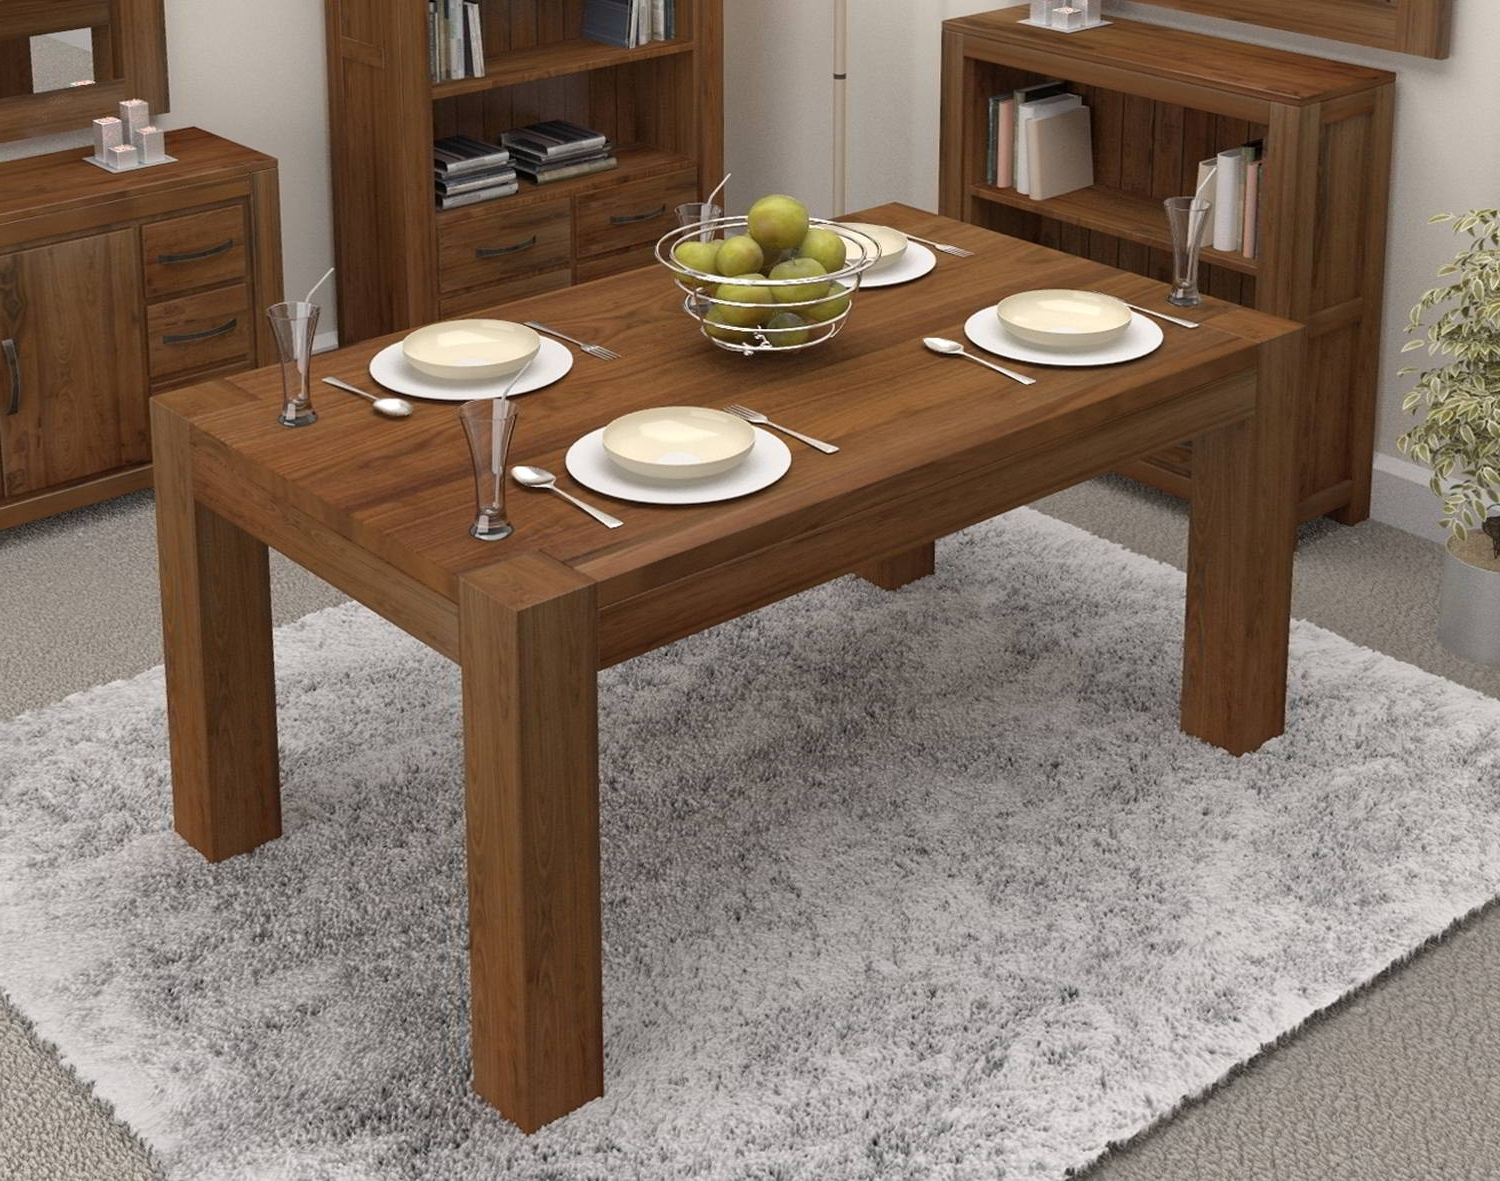 Walnut Dining Table Sets Within Most Popular Linea Solid Walnut Home Dining Room Furniture Four Seater Dining (View 21 of 25)